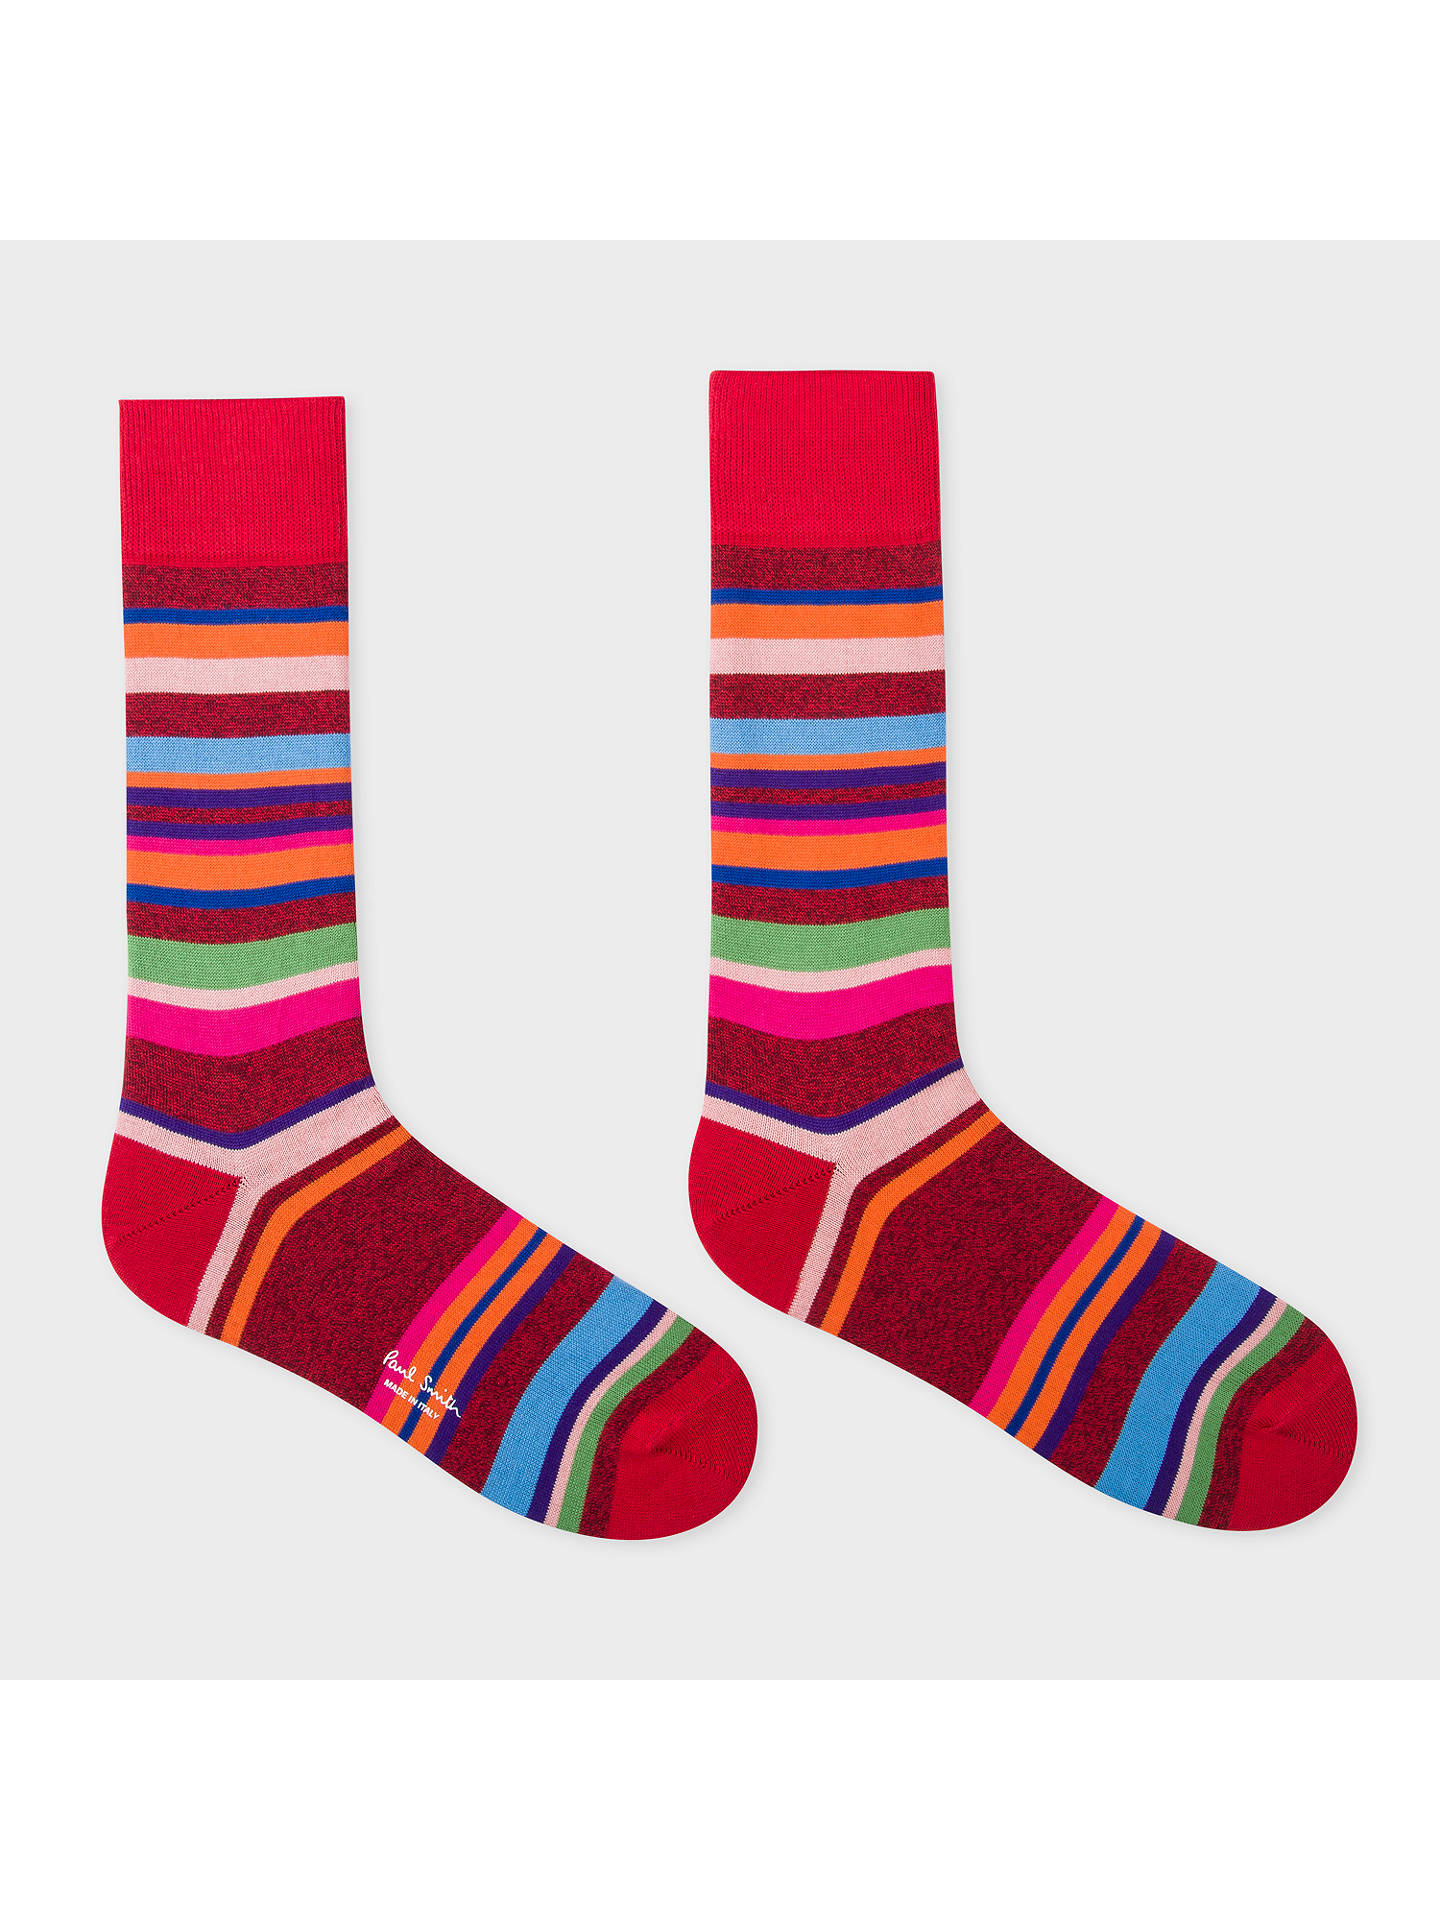 BuyPaul Smith Twisted Yarn Stripe Socks, One Size, Red/Multi Online at johnlewis.com